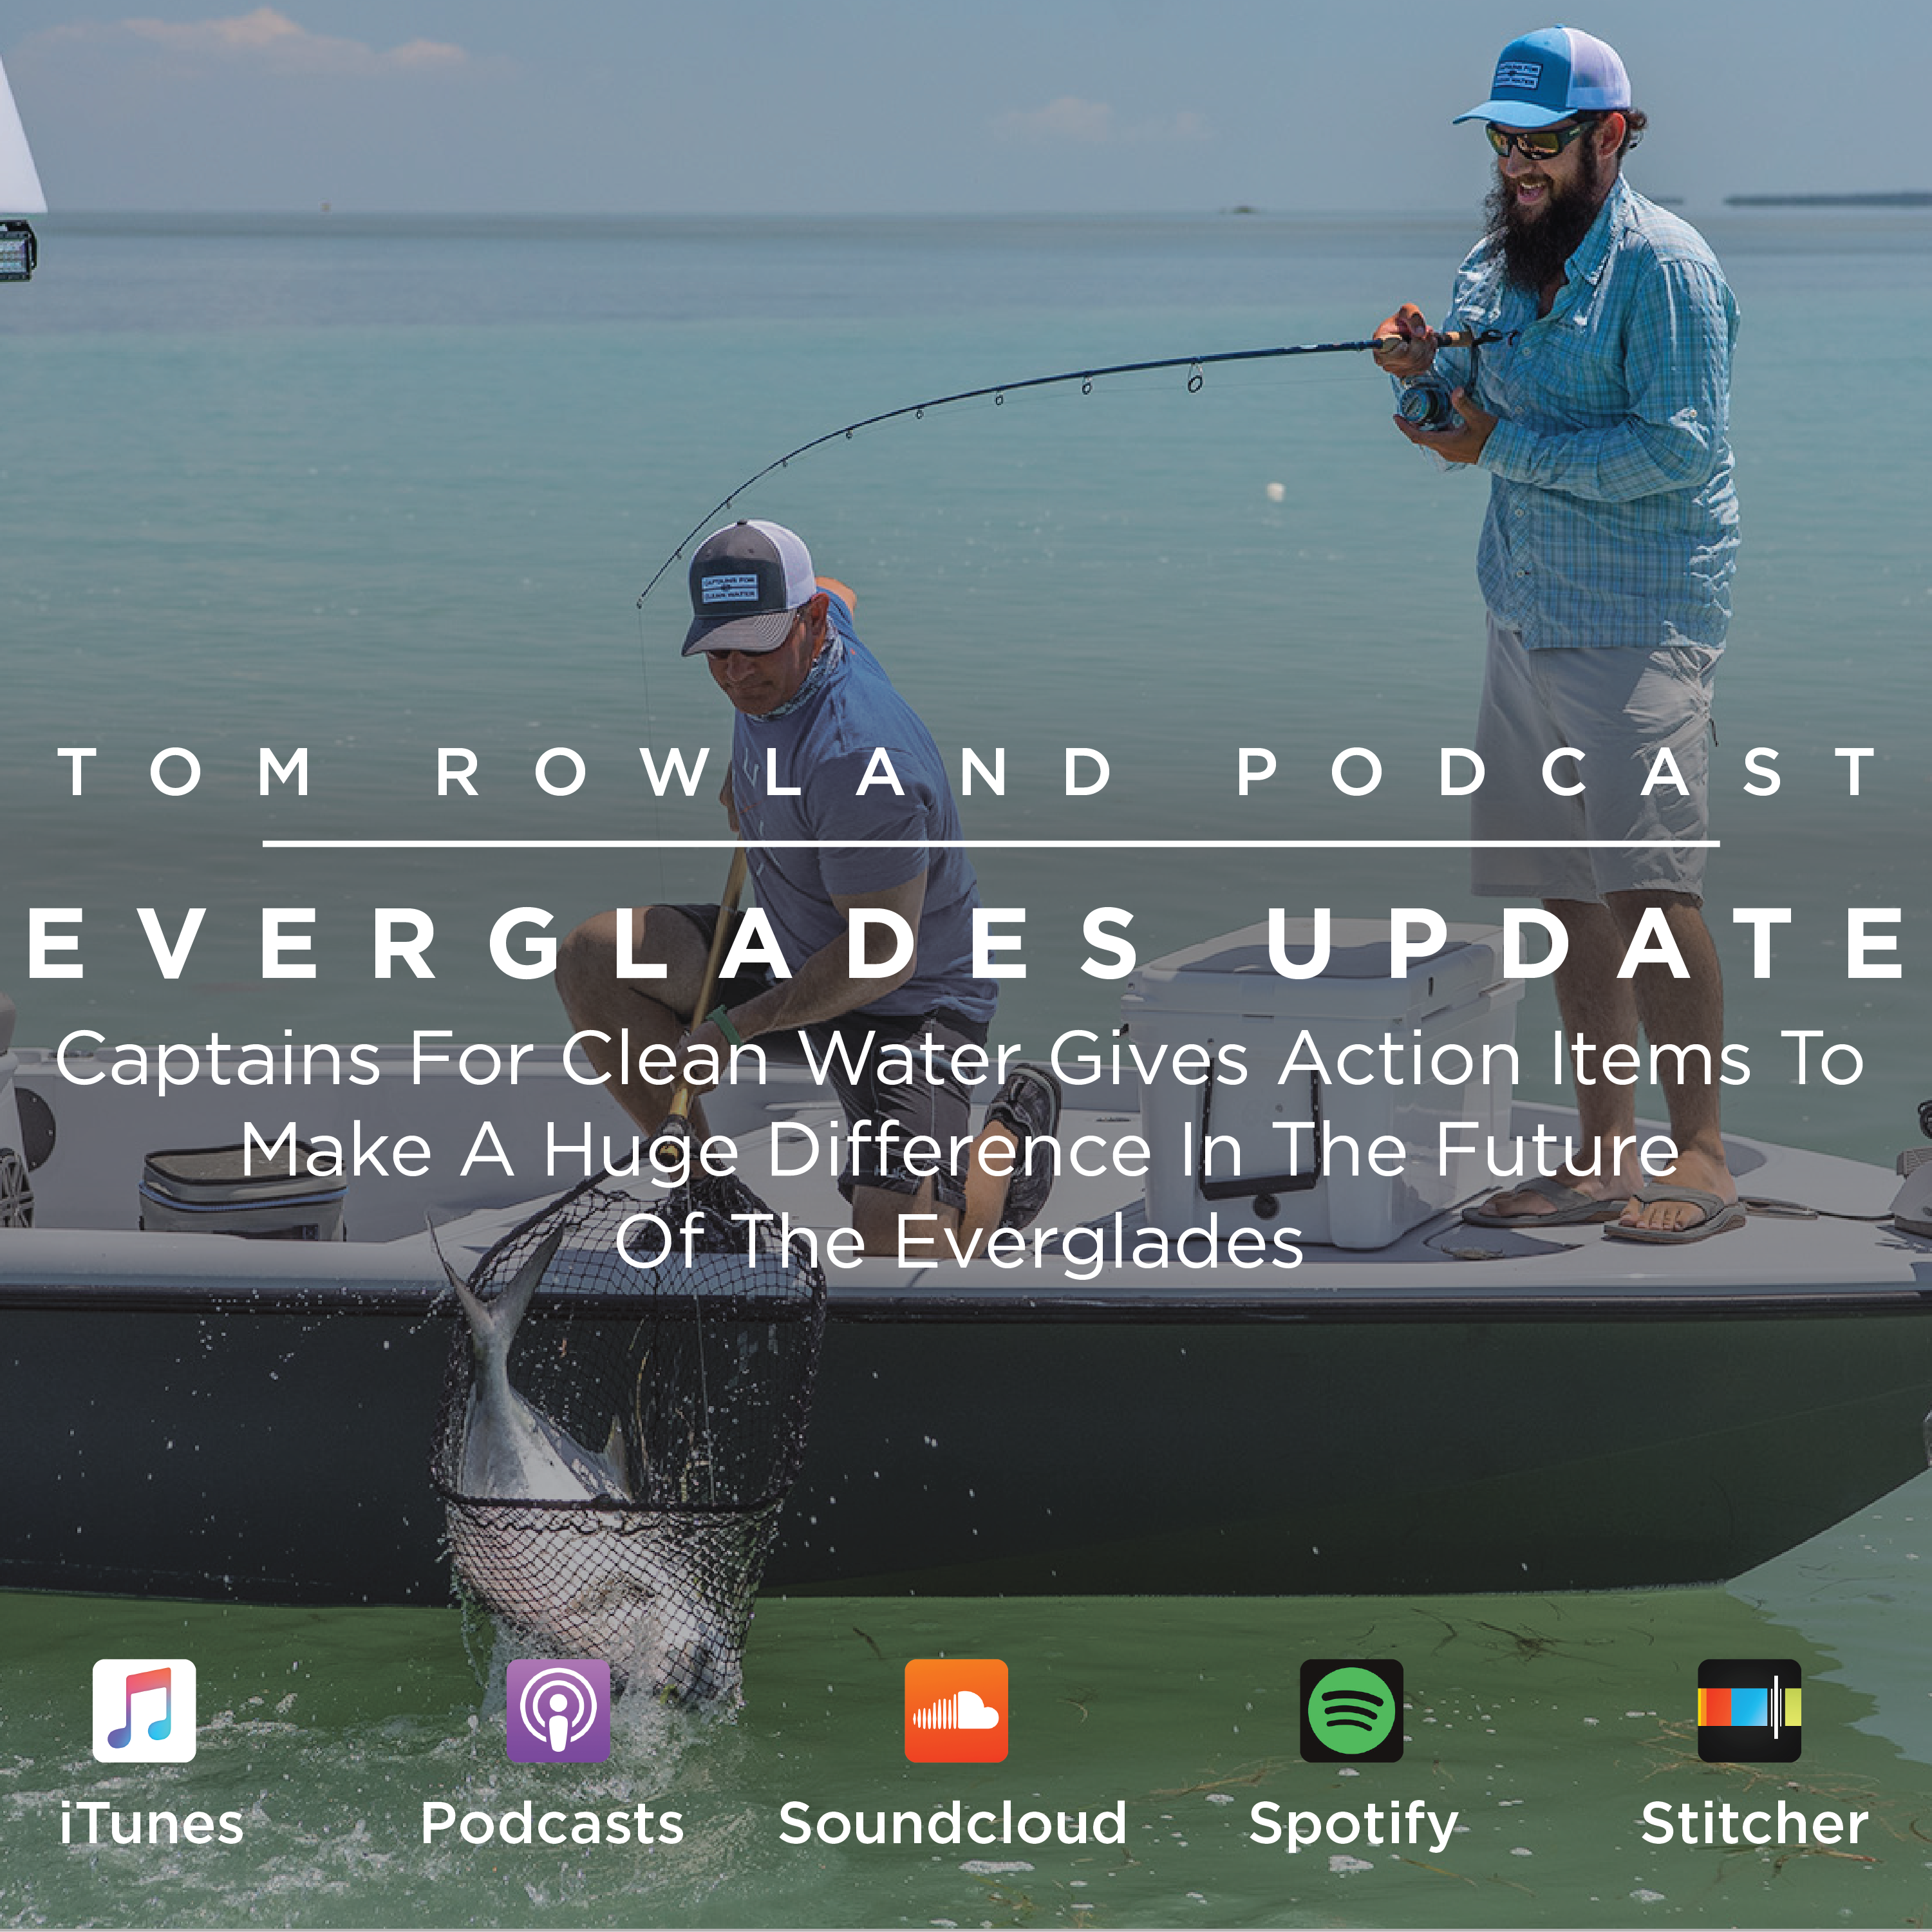 Artwork for #0018 - EVERGLADES UPDATE - Captains For Clean Water Gives Action Items To Make A Huge Difference In The Future Of The Everglades